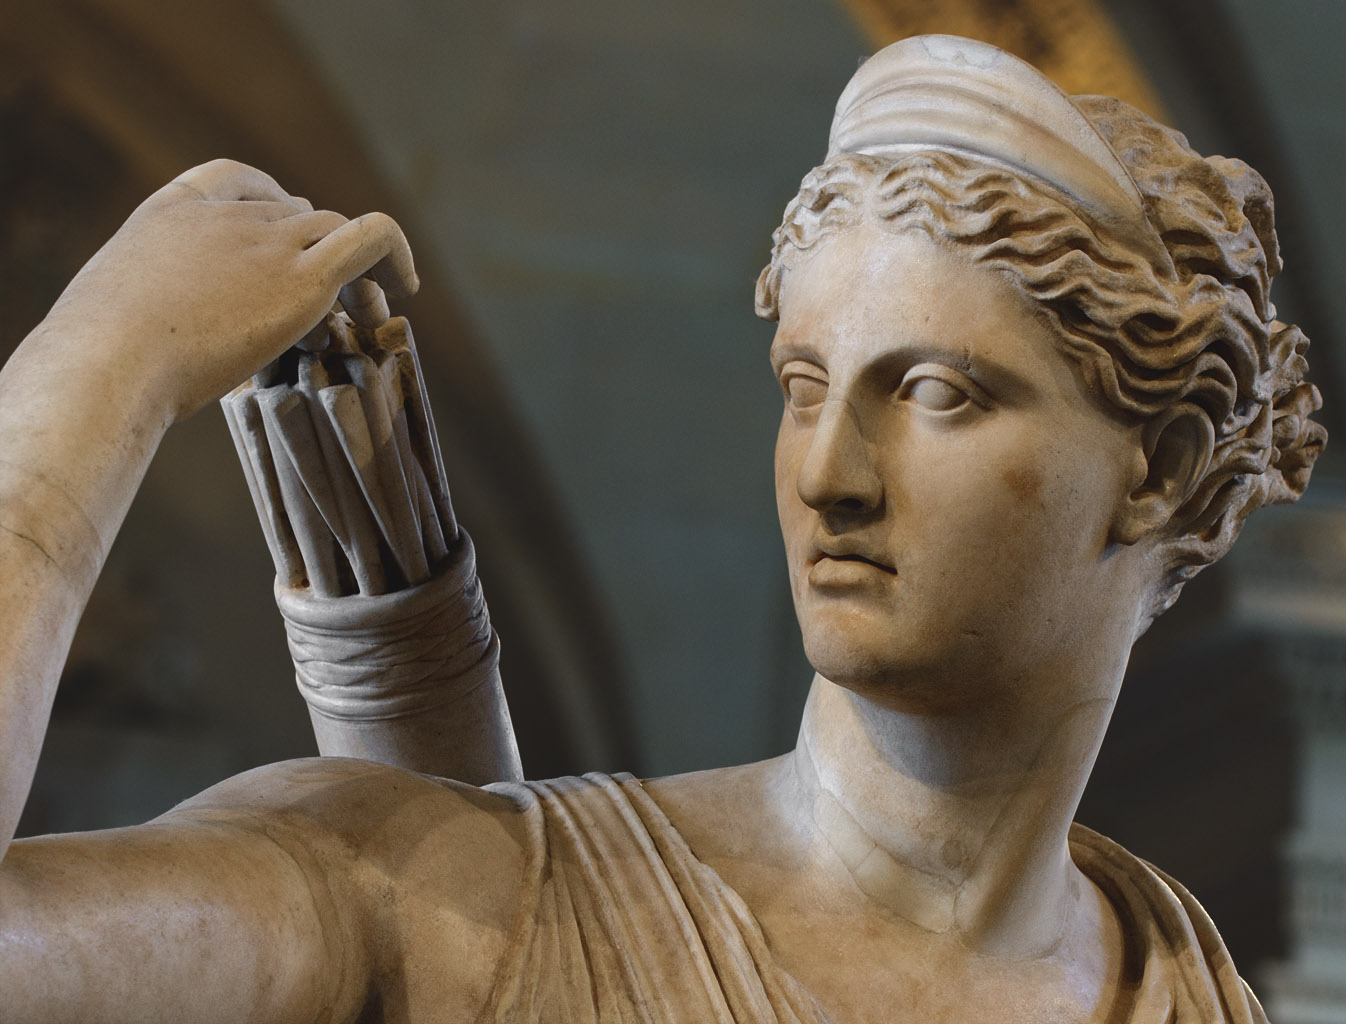 """Diana (Artemis) Huntress known as Diana of Versailles. The """"Seville-Palatine"""" type. Marble. Roman copy of the 1st—2nd cent. CE of a lost Greek bronze original attributed to Leochares, ca. 325 BCE. Inv. No. MND 1560 / Ma 3435. Paris, Louvre Museum, Galerie des Caryatides"""